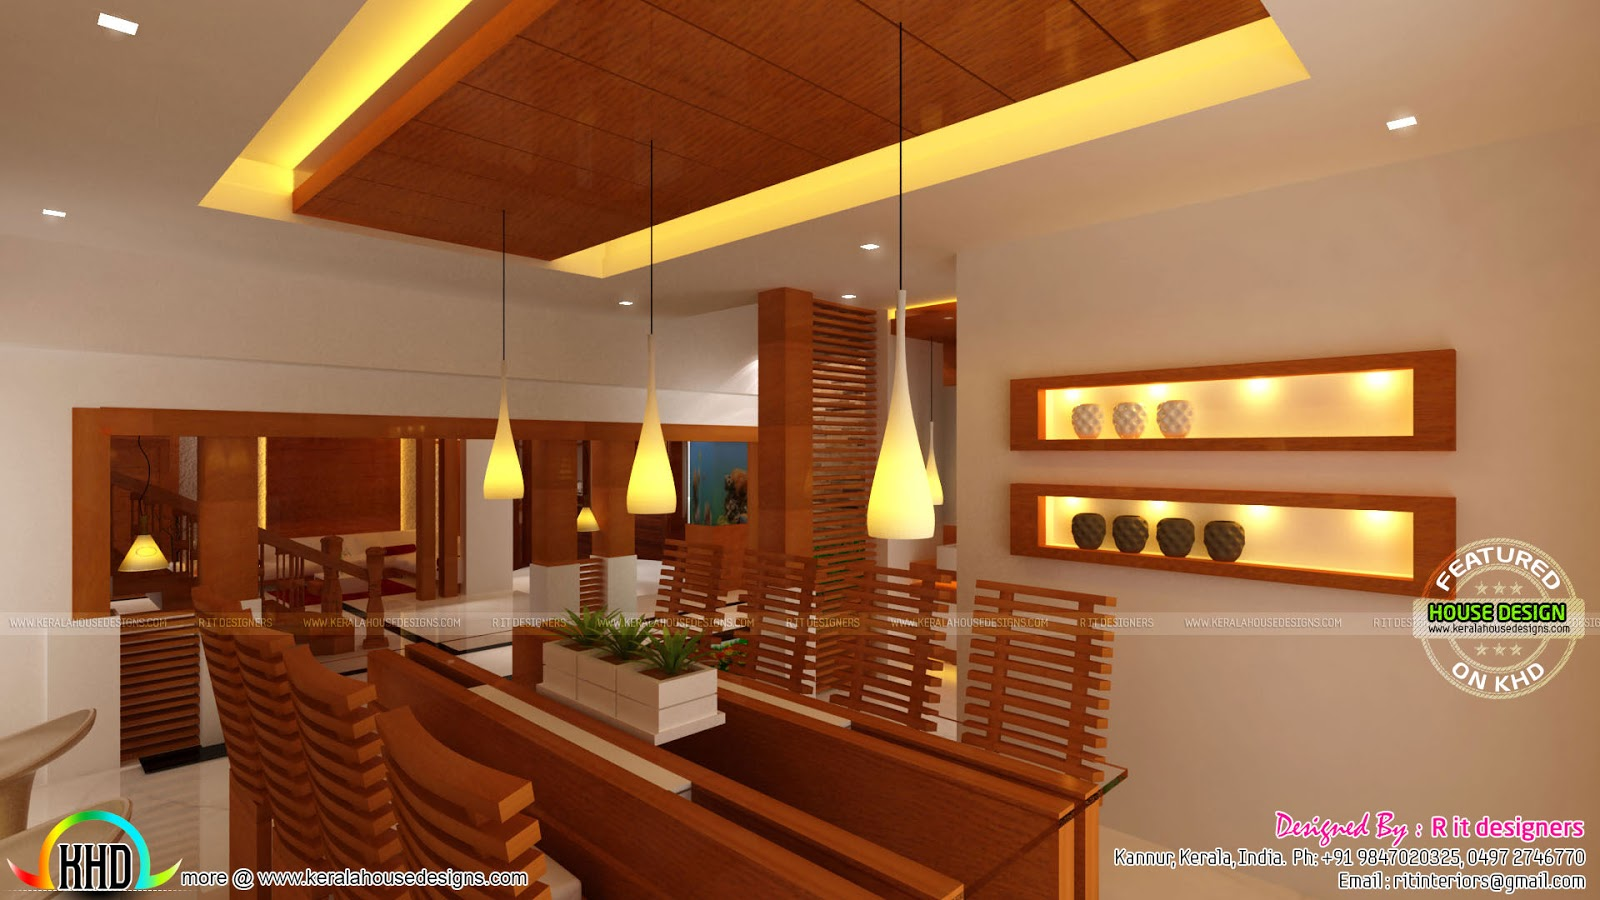 Wooden finish interior designs kerala home design and Design interior of house